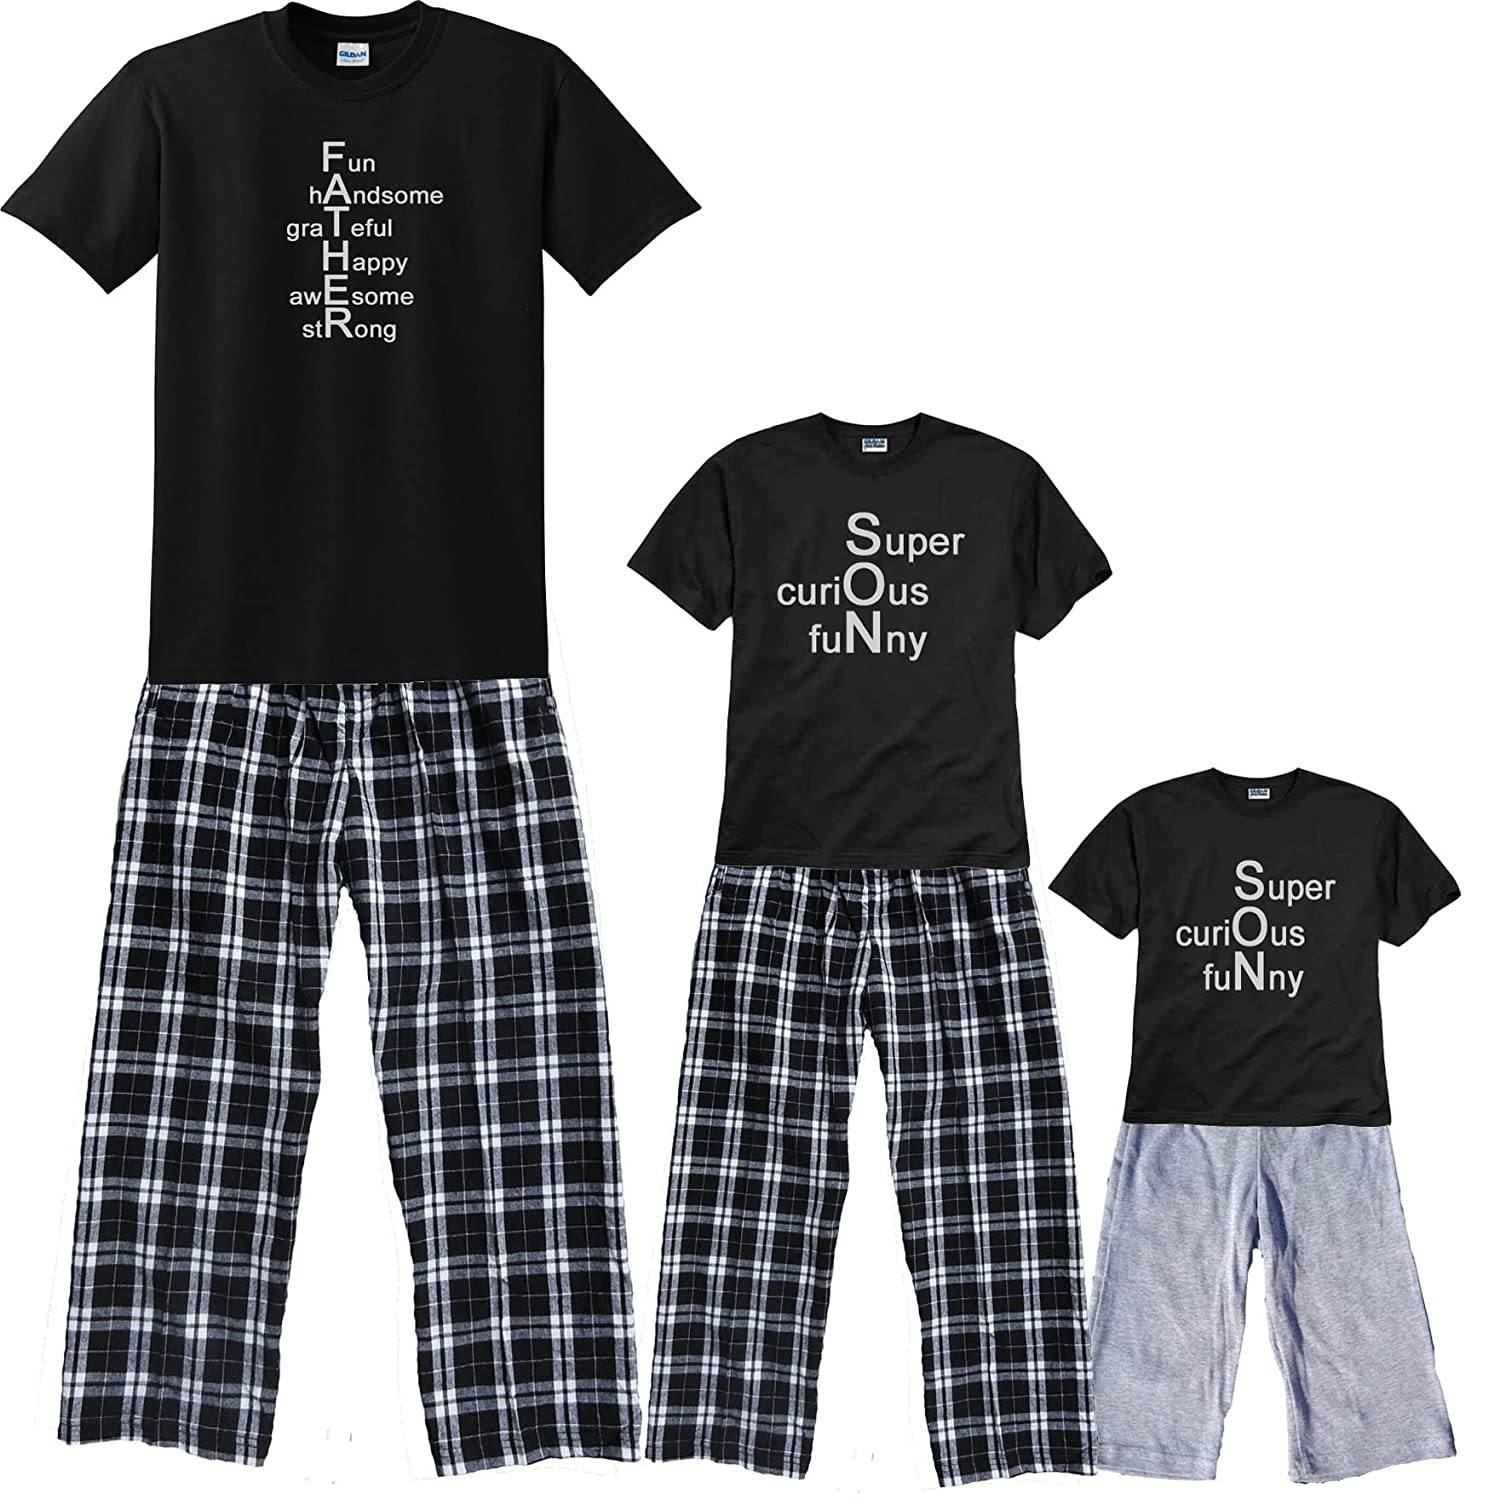 062fc50f Dad And Toddler Matching Flannel Shirts